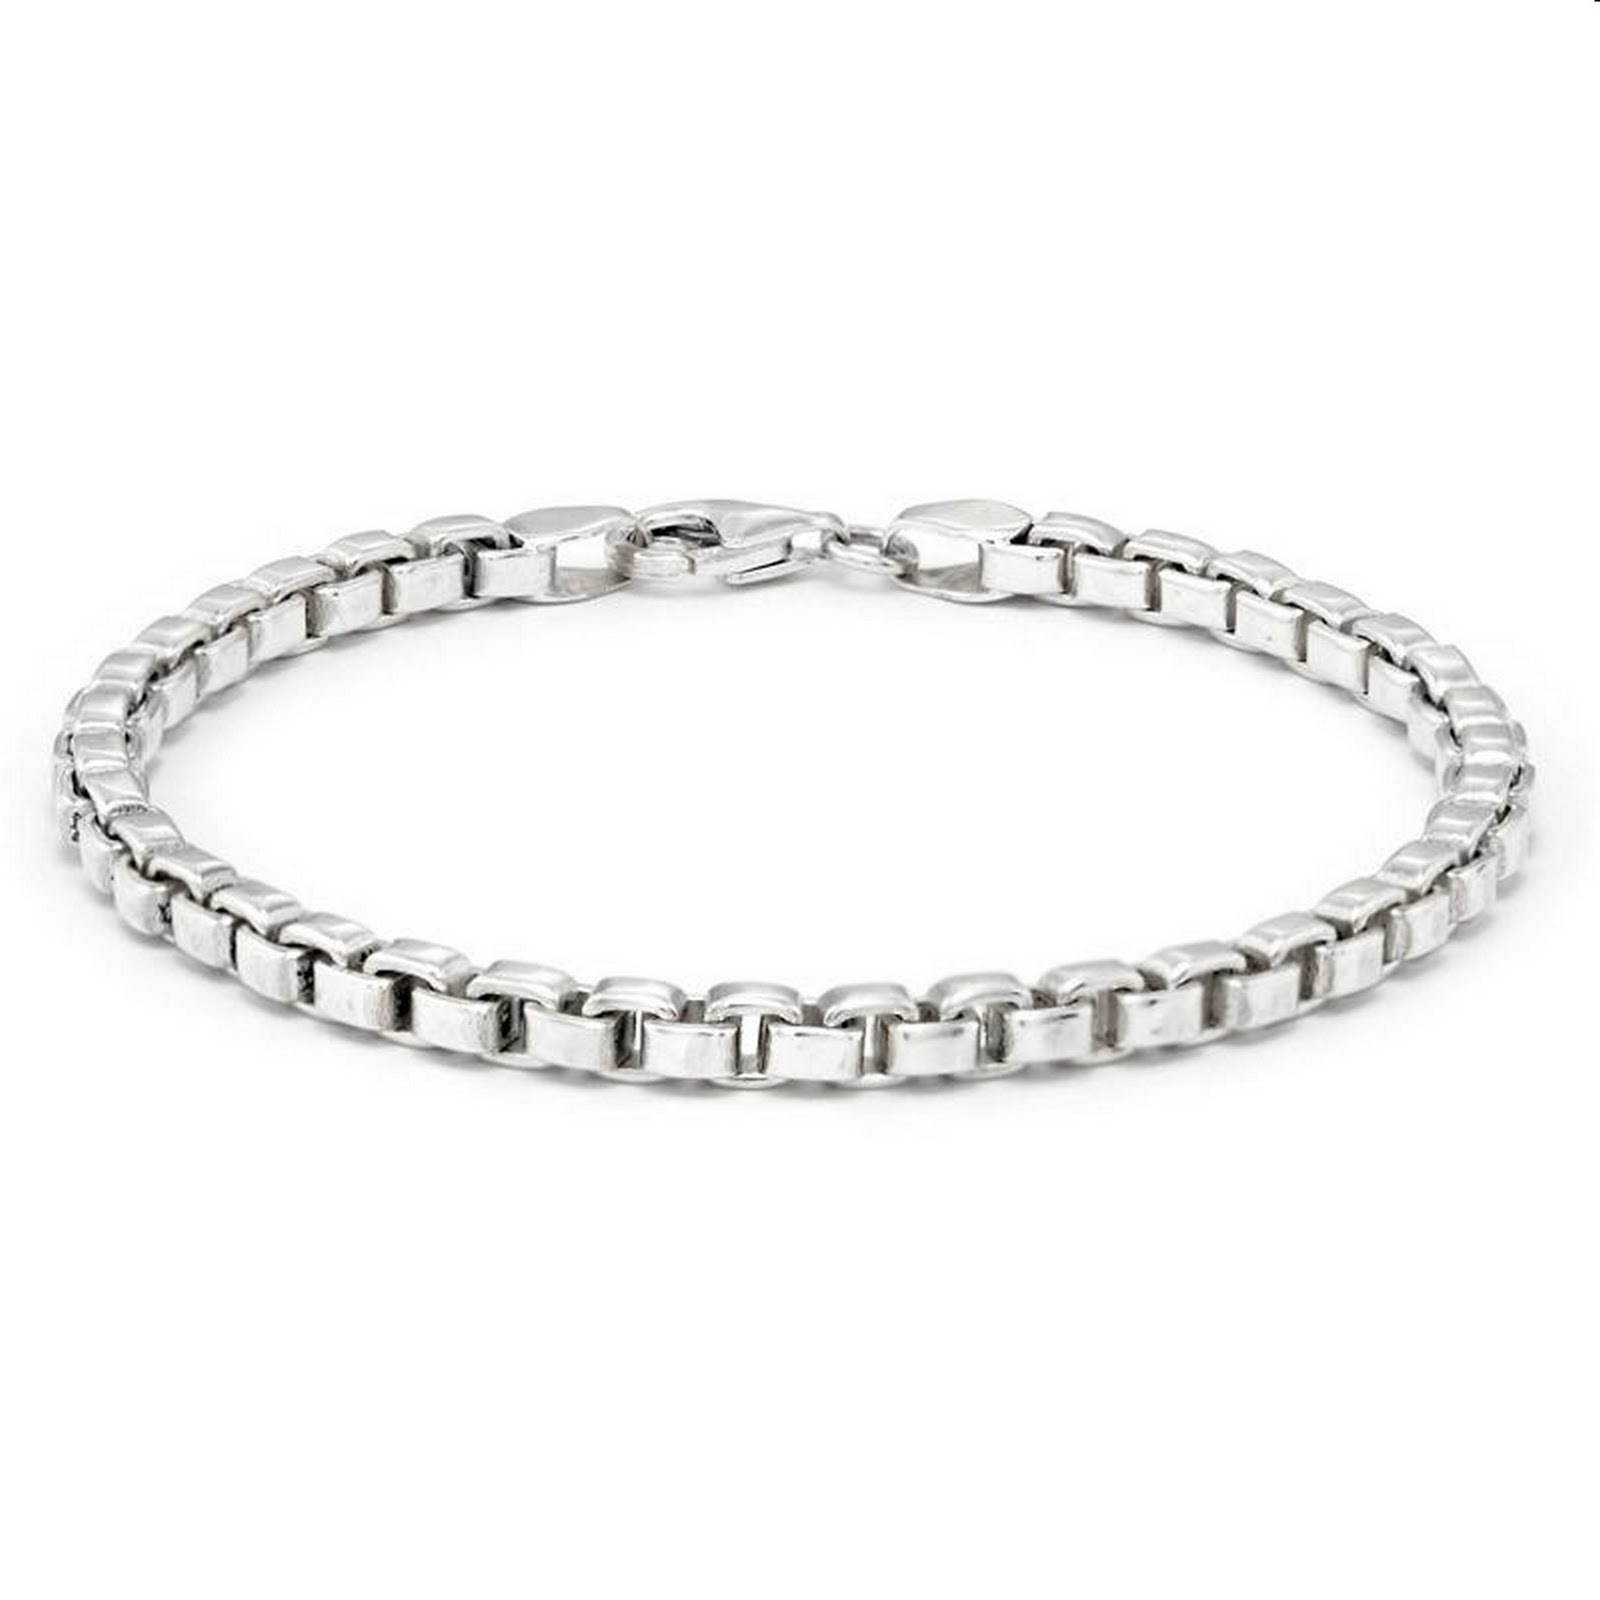 We Introducing Here Sterling Silver Bracelets For Women Hope Like Them And When They Wears Look Very Cute Smart Pretty